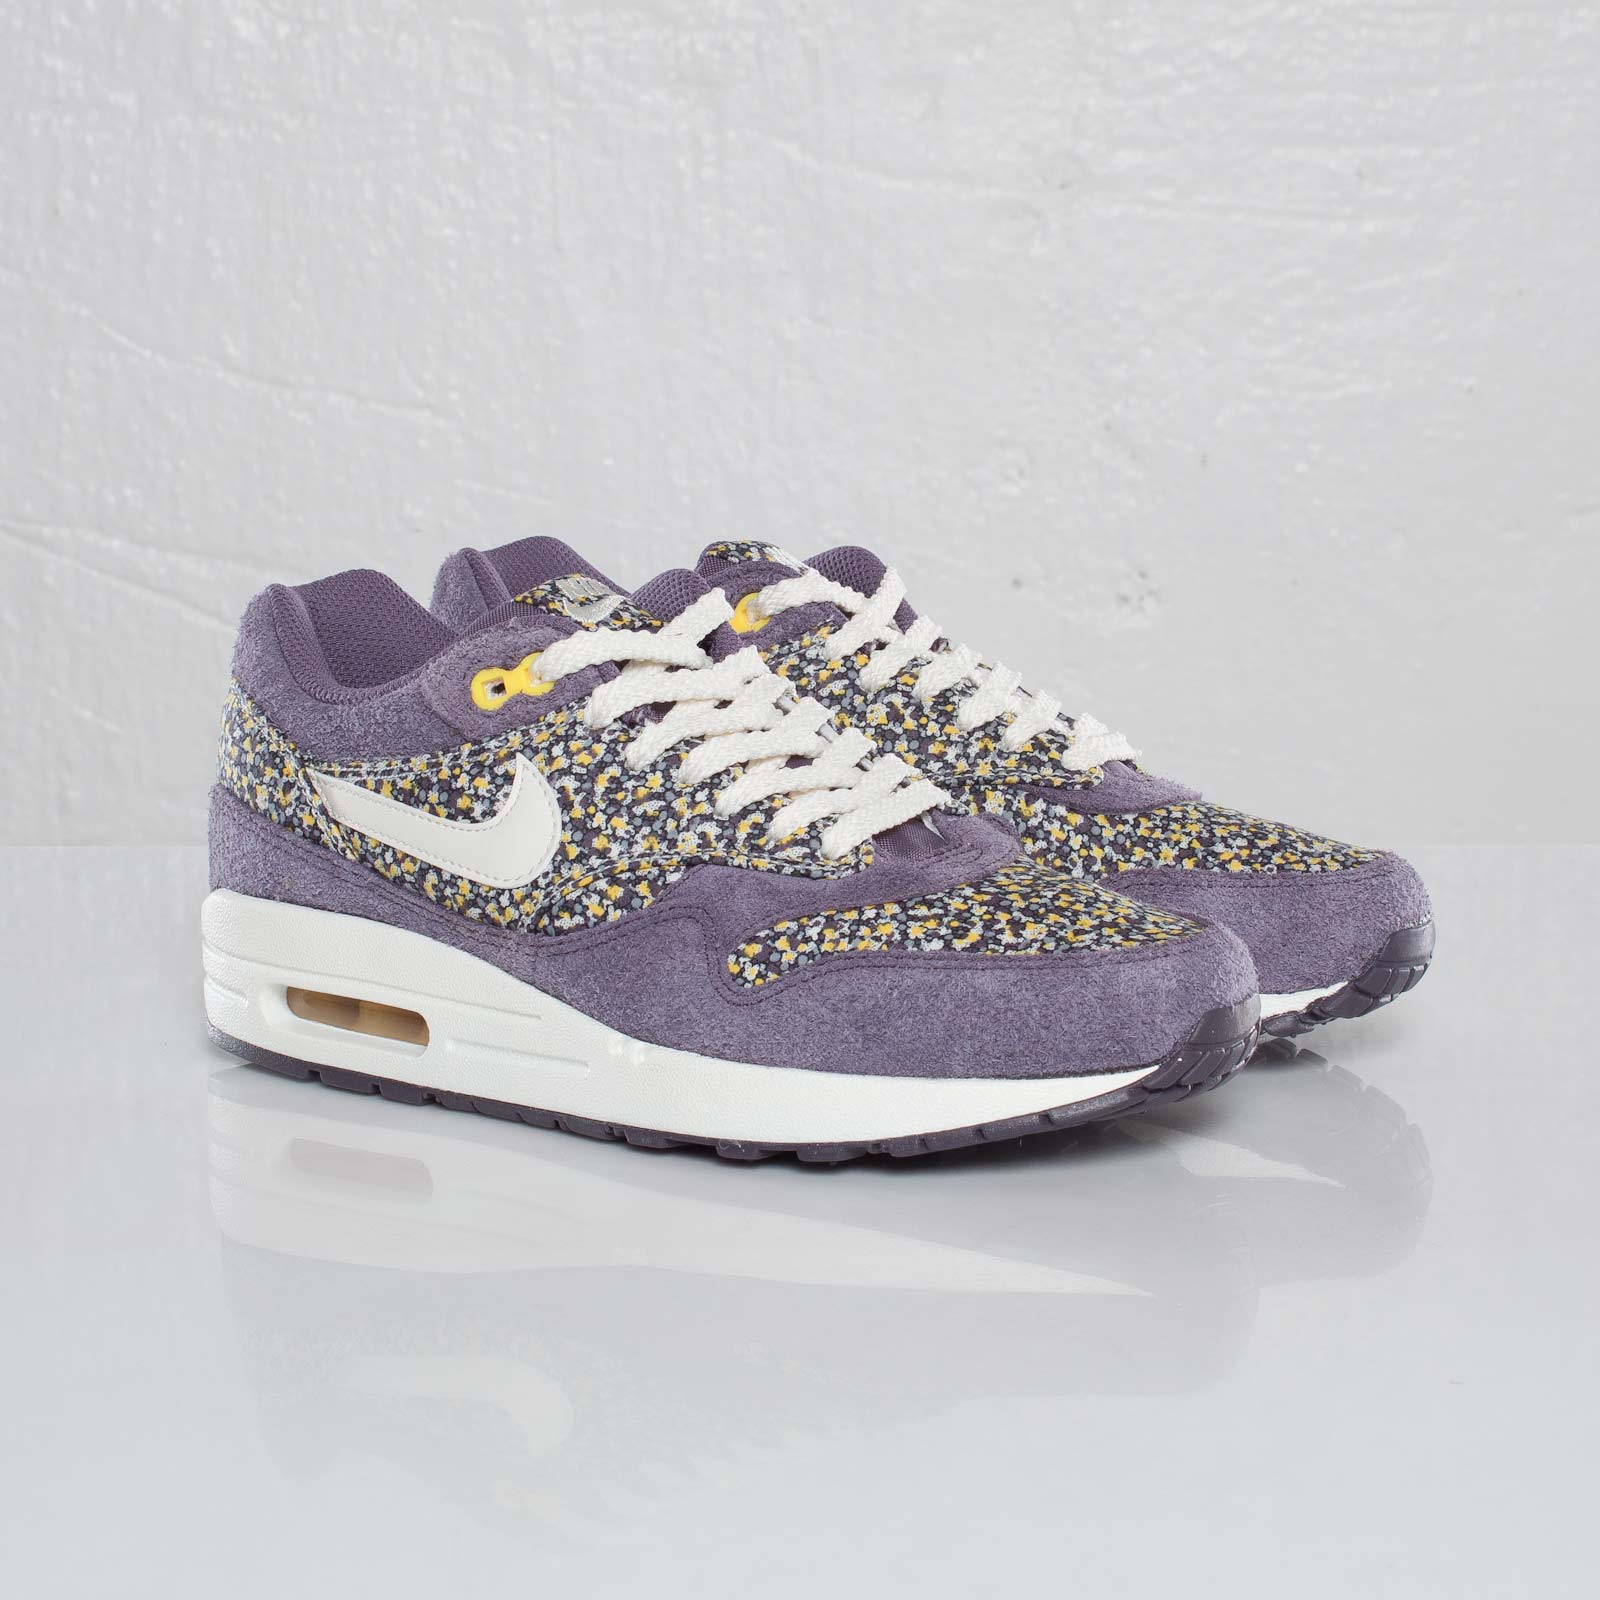 8513a43237c5 Nike Wmns Air Max 1 ND Lib - 111001 - Sneakersnstuff